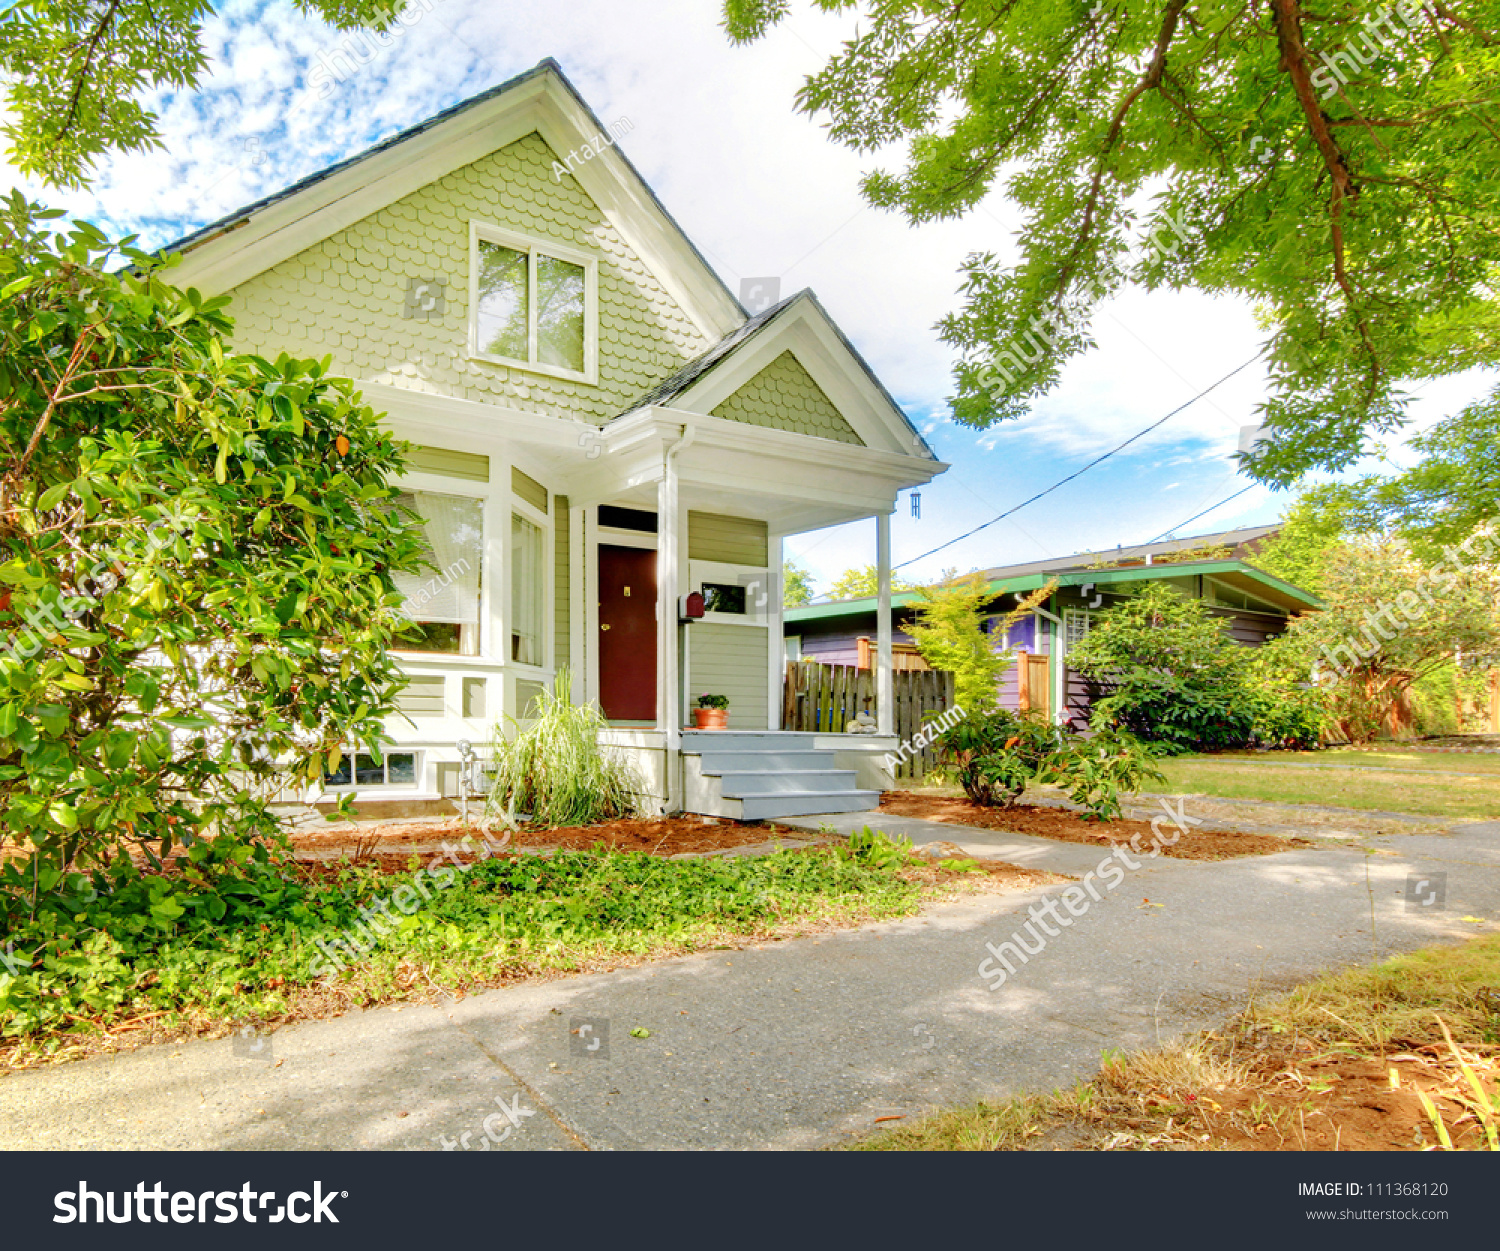 Pleasing Small Cute Craftsman American House Green Stock Photo 111368120 Largest Home Design Picture Inspirations Pitcheantrous